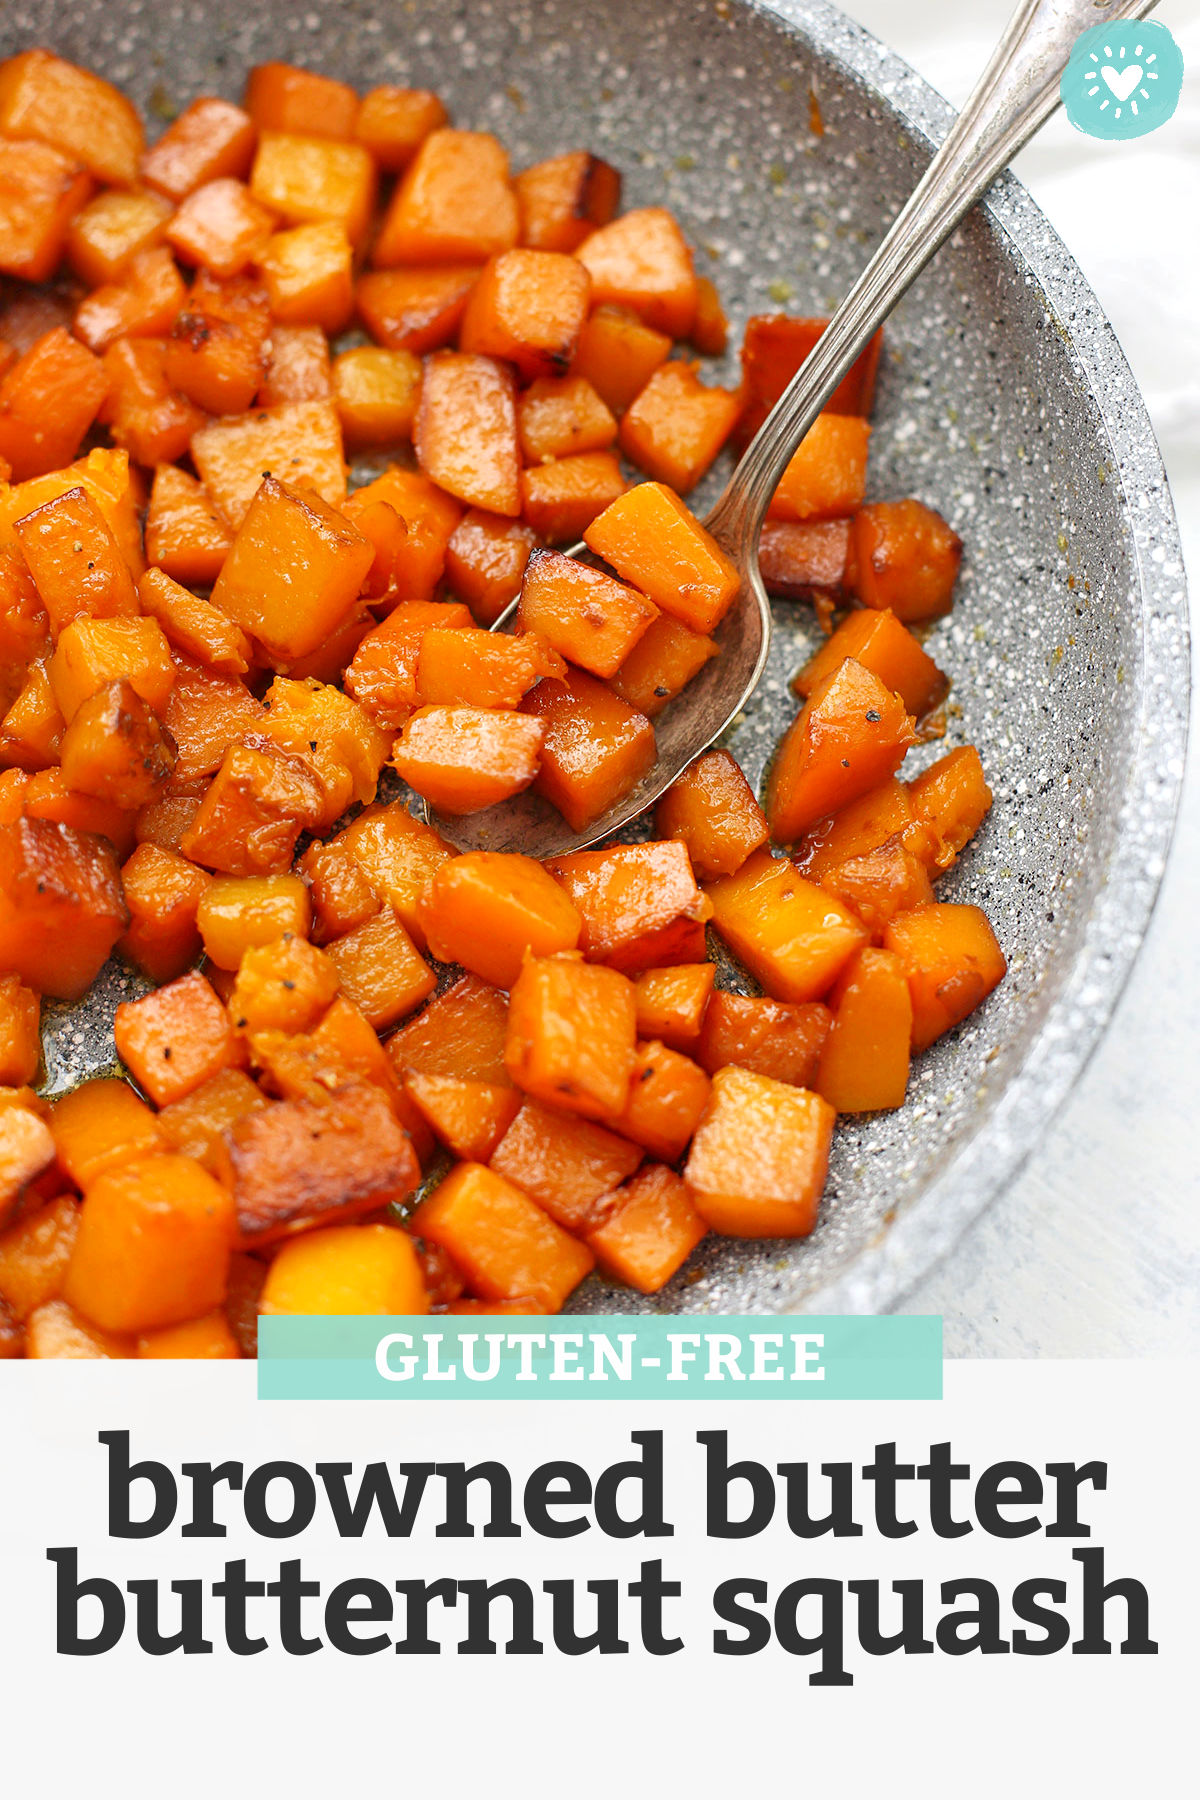 Caramelized Browned Butter Butternut Squash - These gorgeous browned butter squash recipe is the PERFECT side dish--savory, sweet, and gorgeously caramelized all over! (Gluten Free)// butternut squash recipes // Side dish // easy side dish recipe // vegetable side dish // #glutenfree #squash #butternutsquash #sidedish